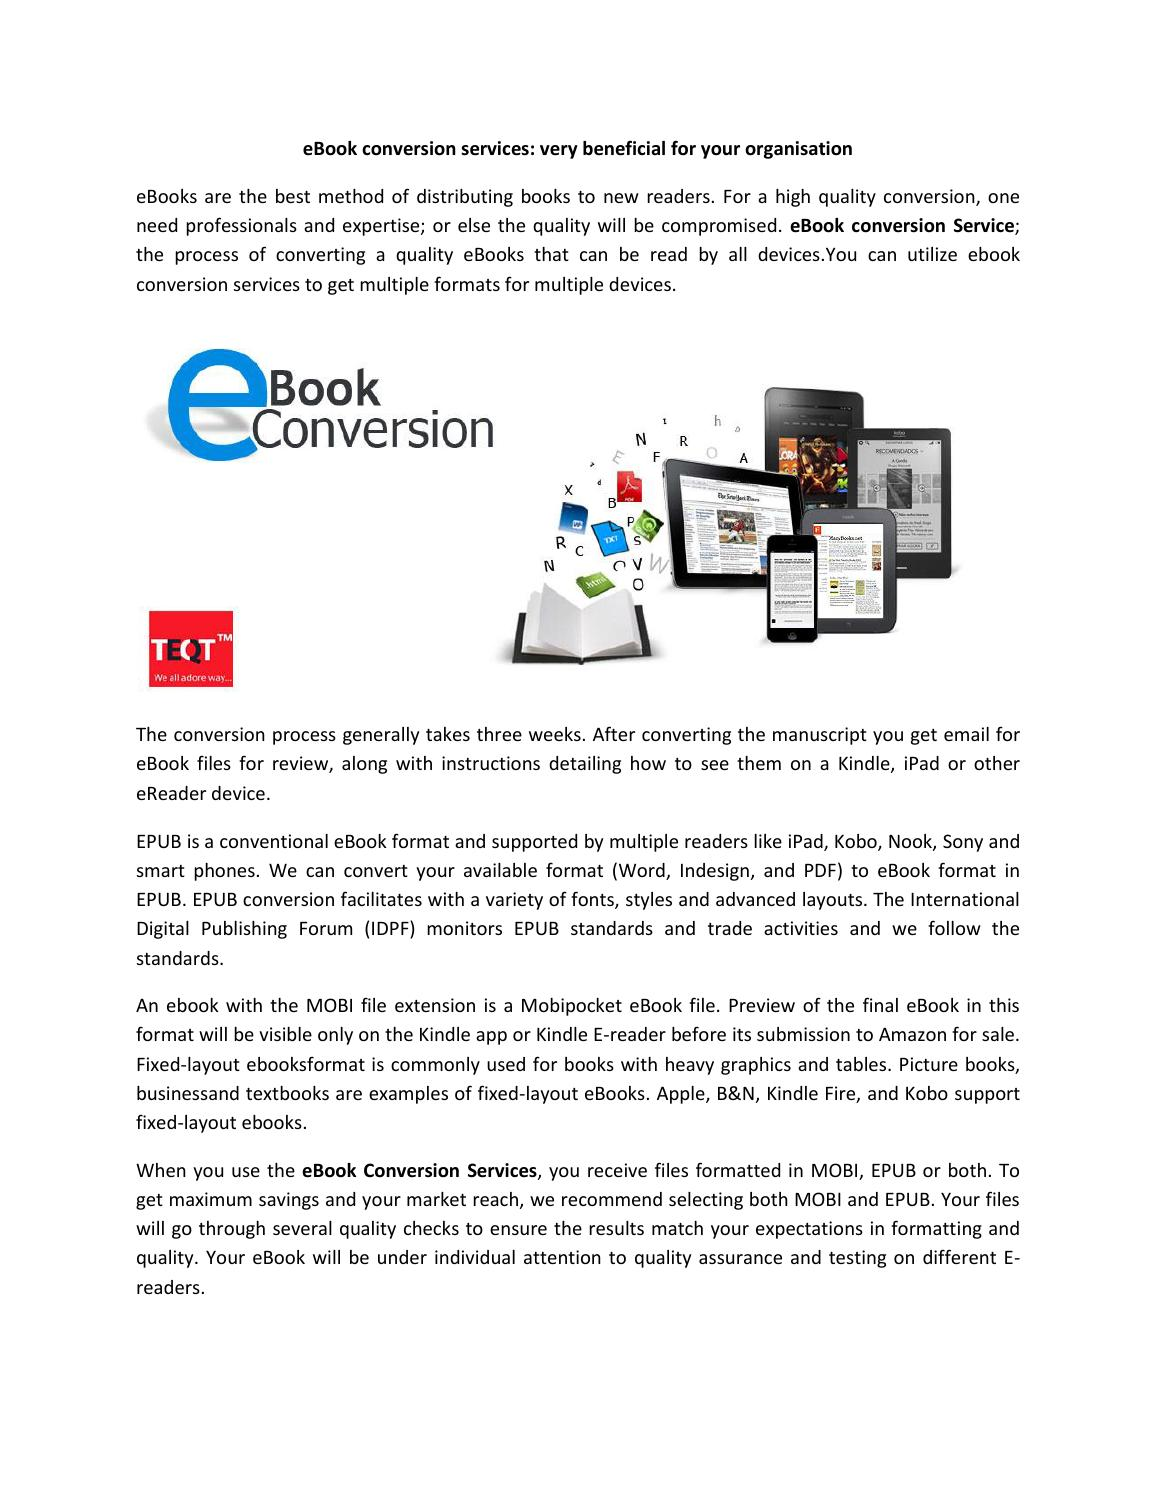 Best ebook conversion service In Noida by Teqt India - issuu